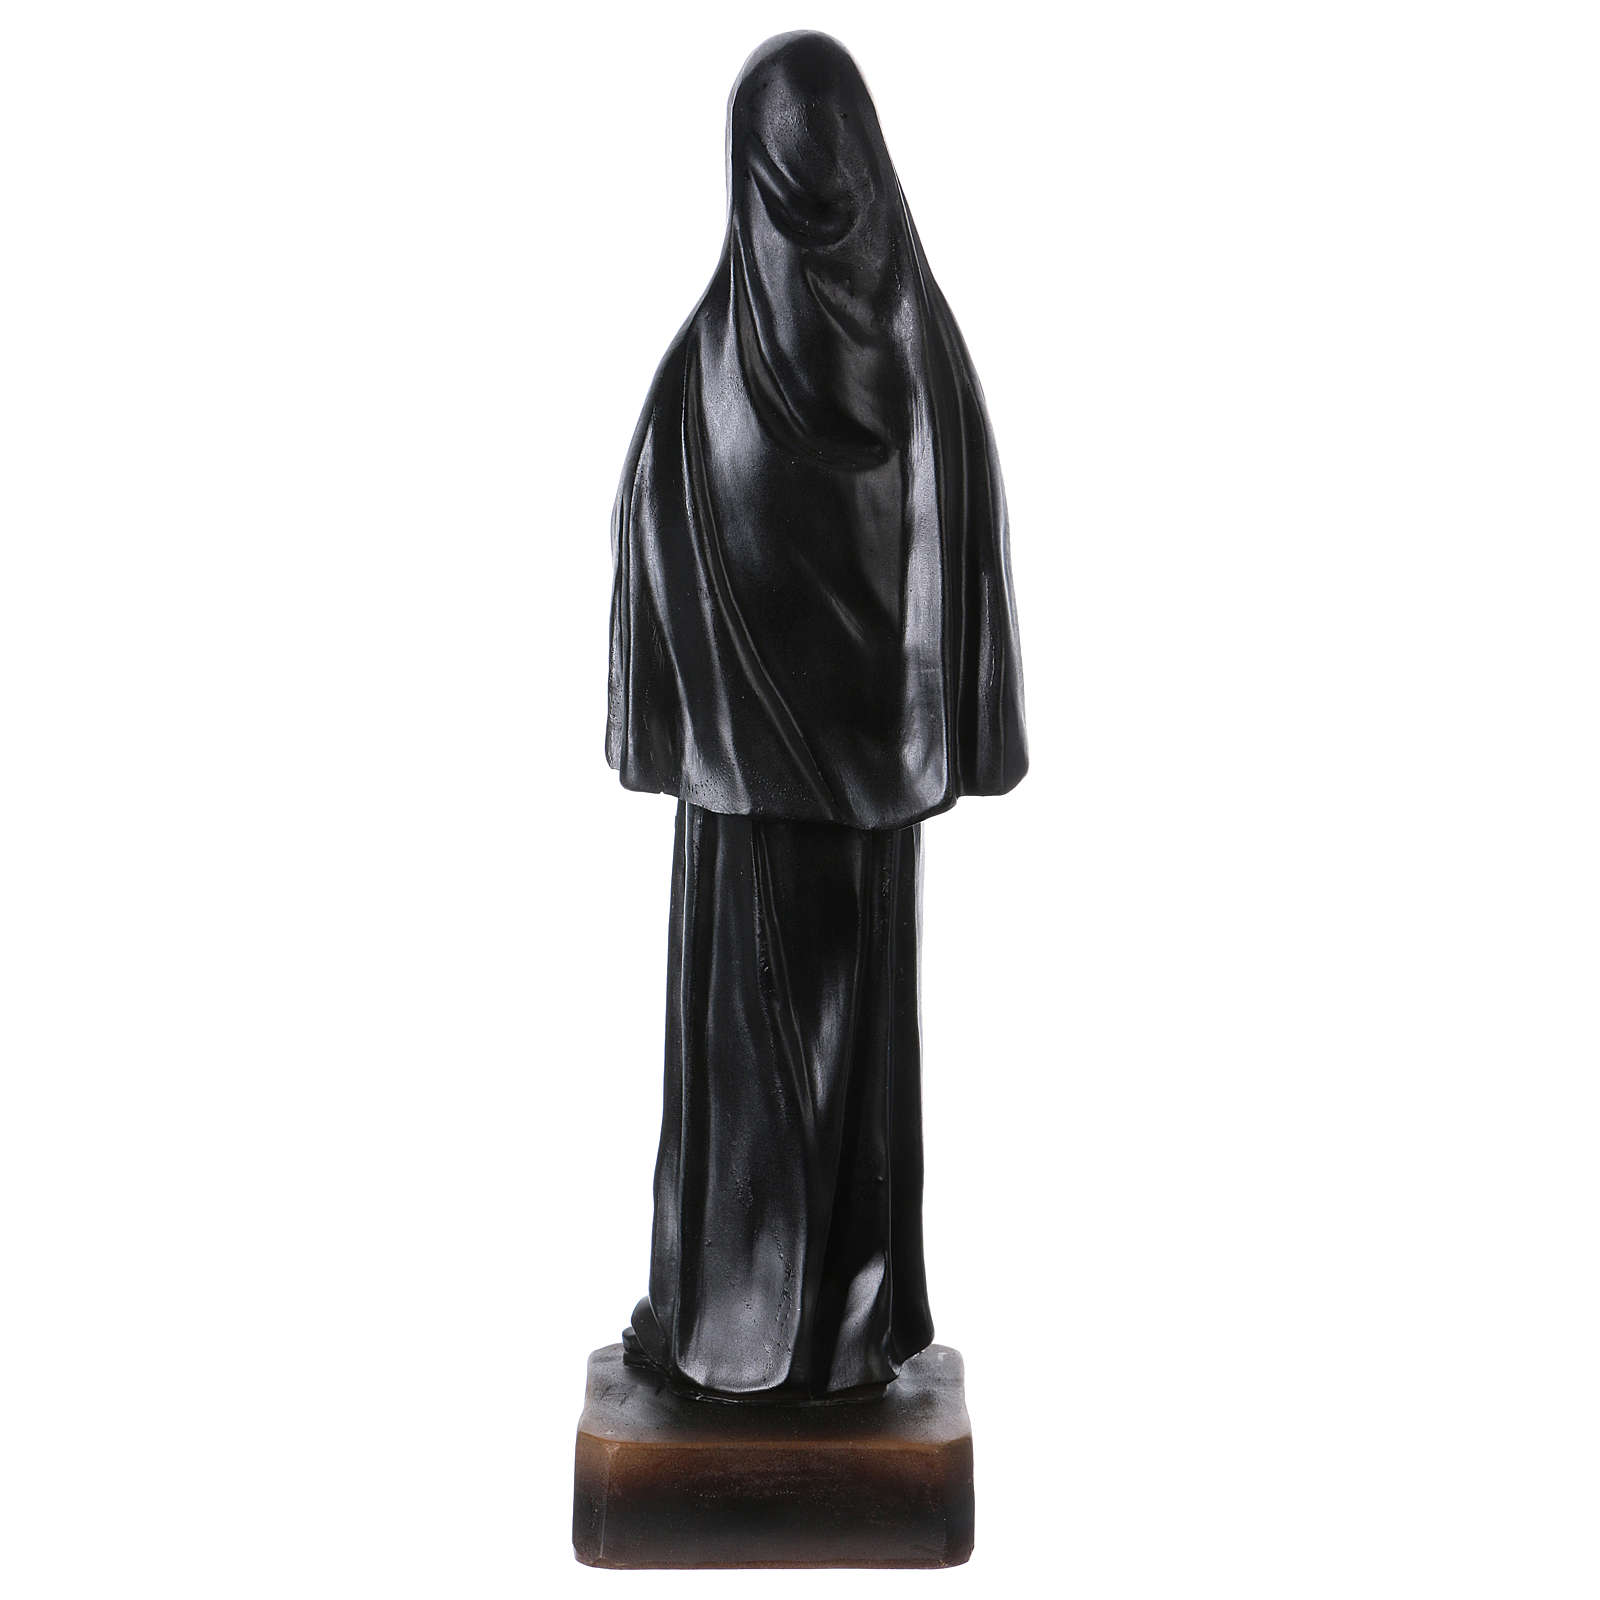 Saint Rita statue in resin 20 cm 4